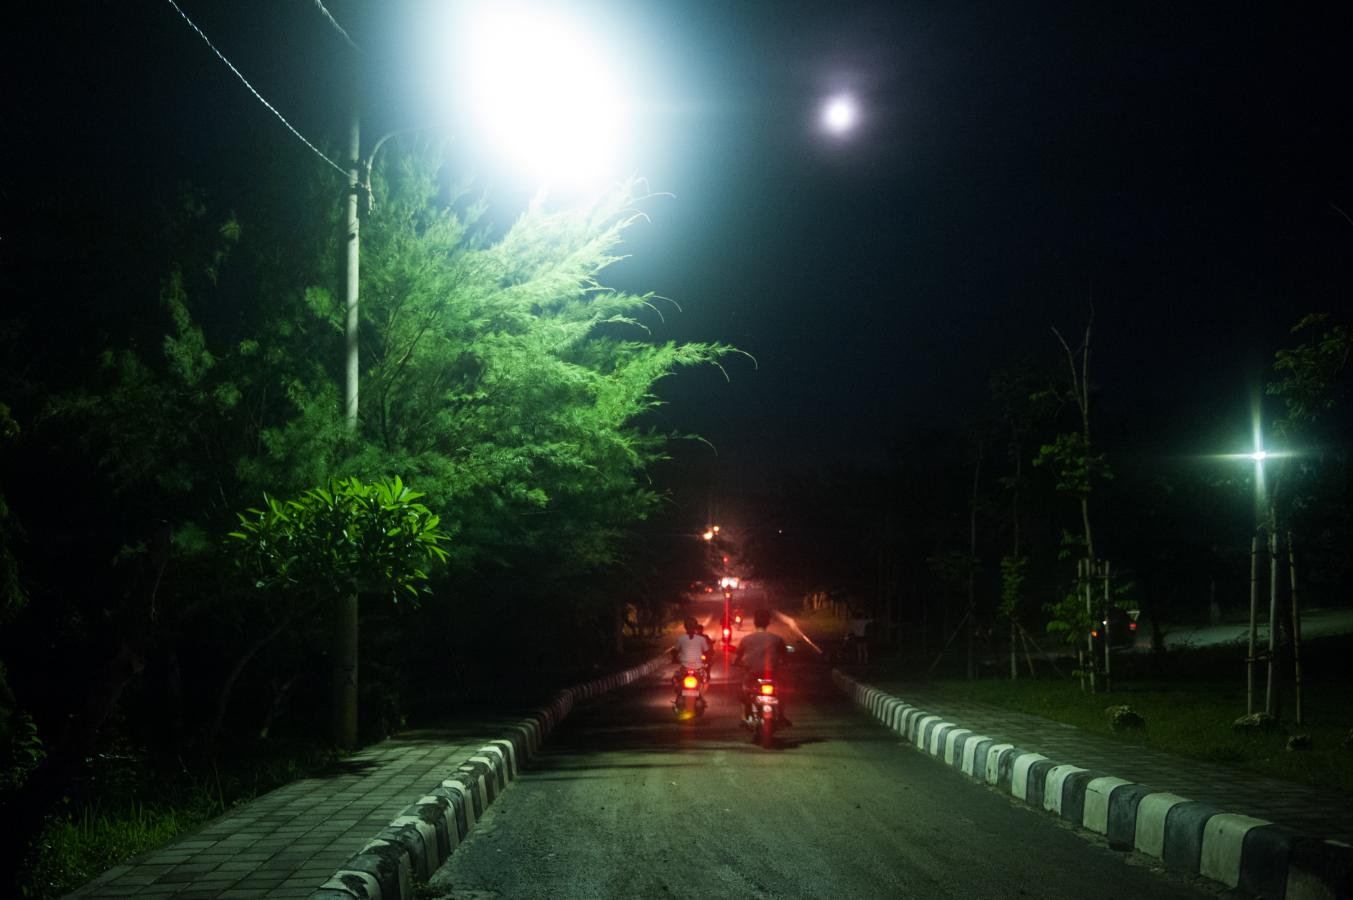 bikers-in-the-night-bali-2013